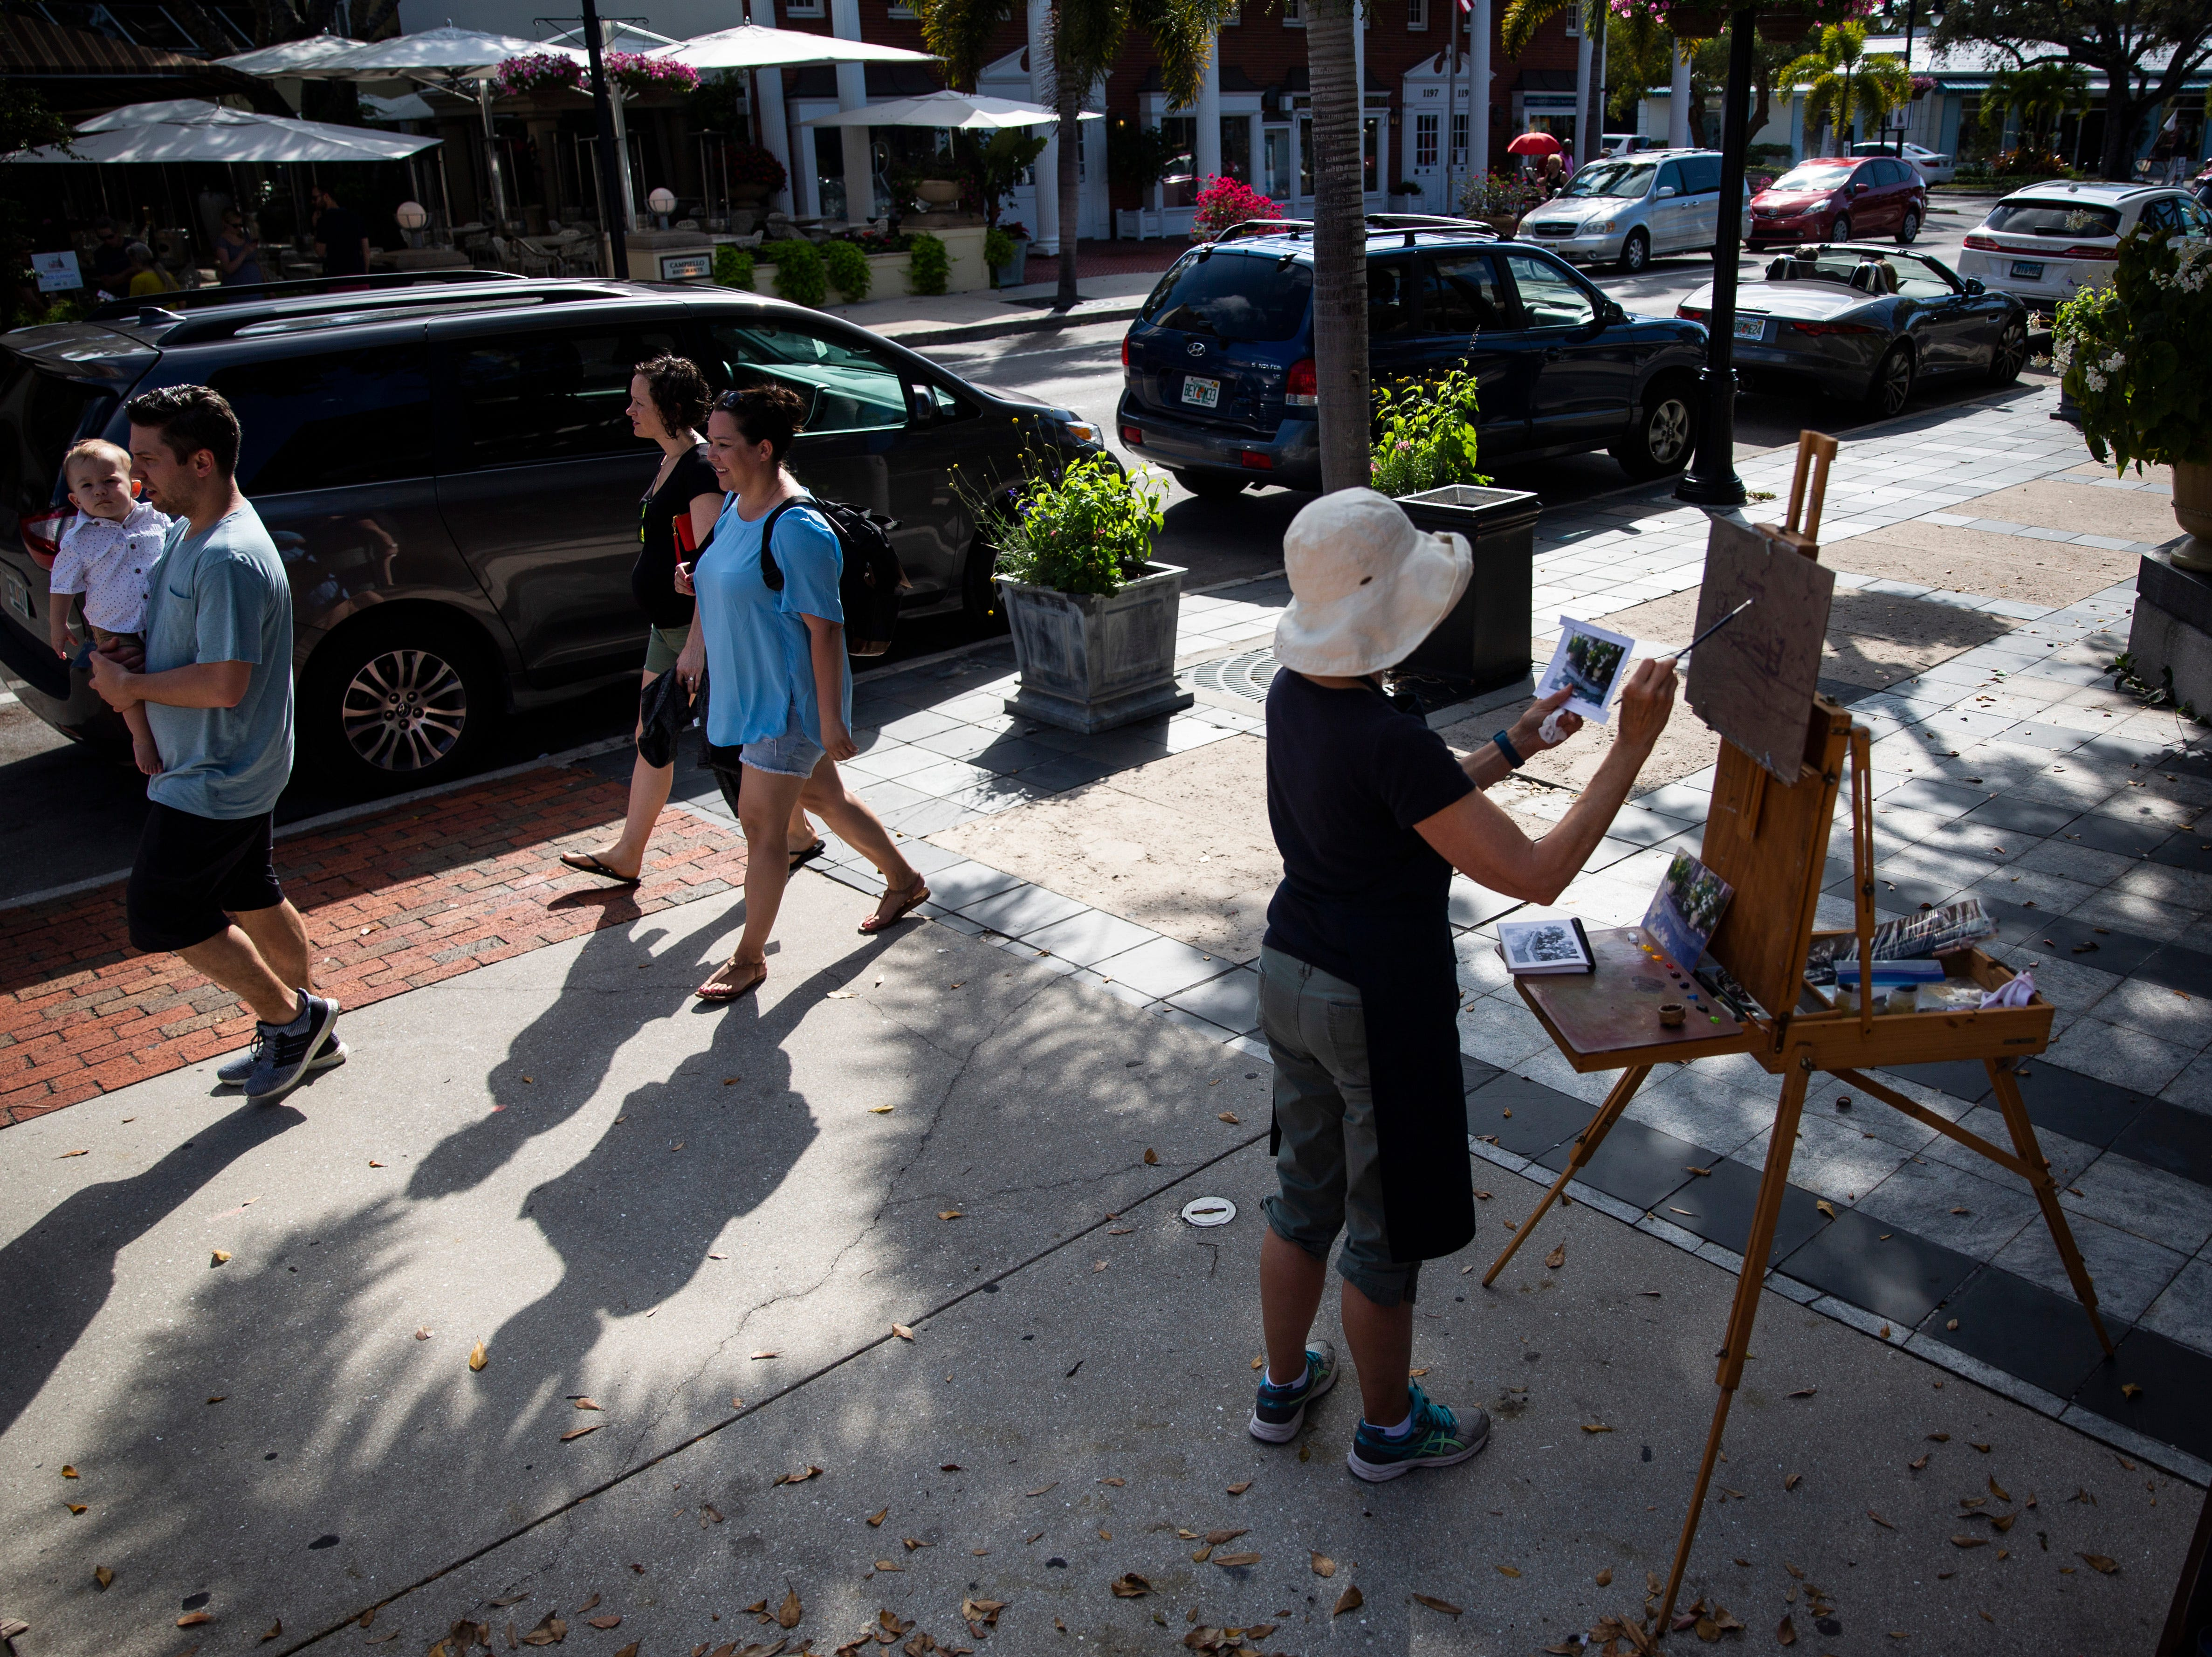 Susan Lindsey paints while people walk past her during the annual Third on Canvas event on Third Street South in Naples, on Sunday, Feb. 17, 2019.